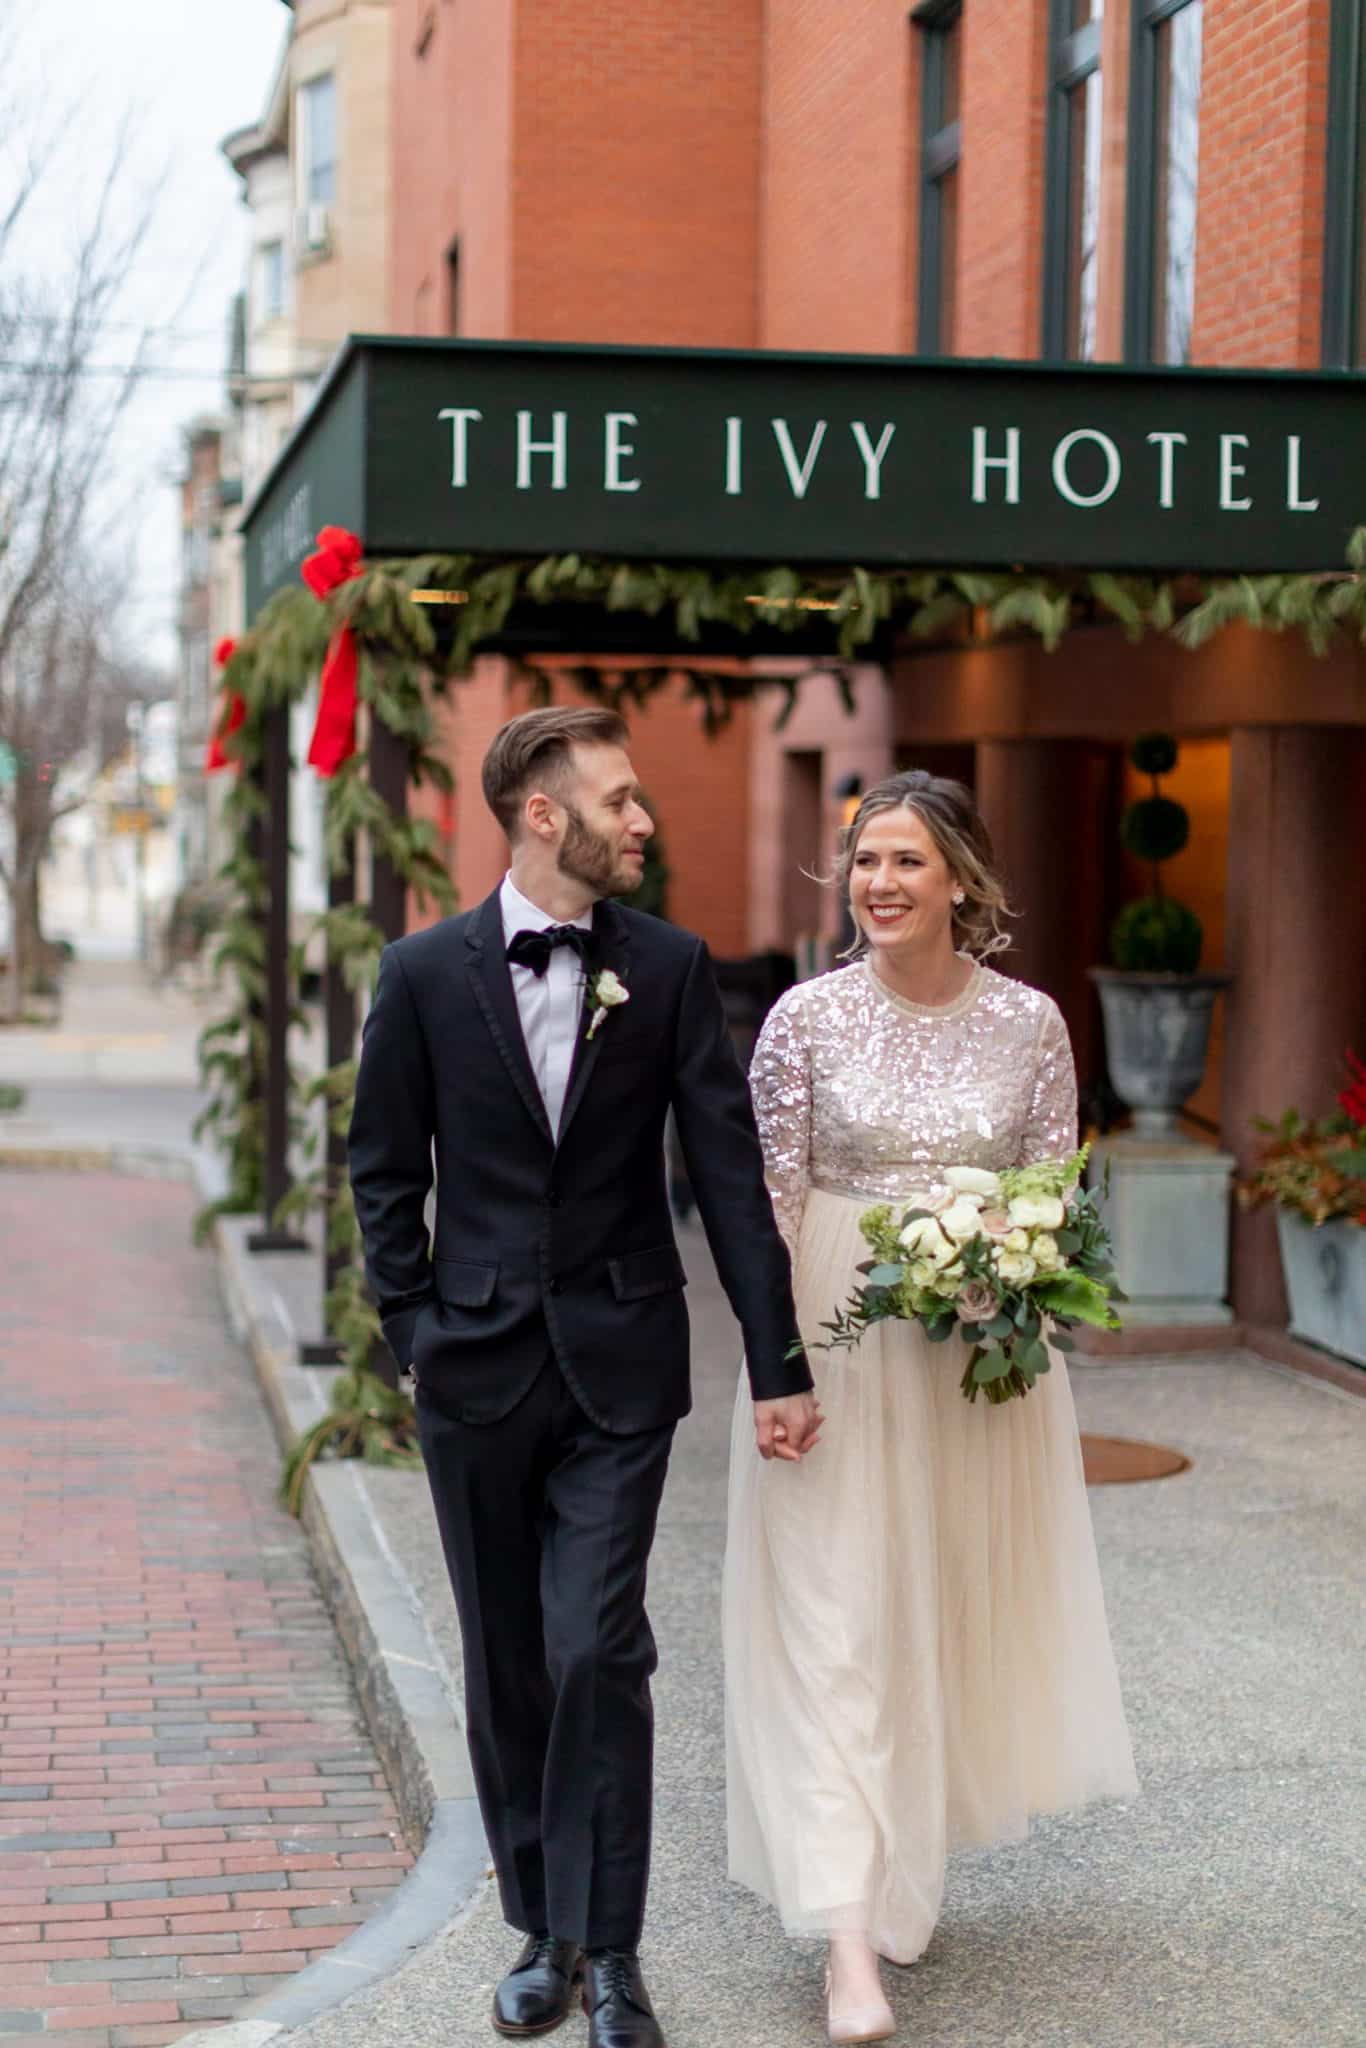 Bride and groom walking hand in hand in front of The Ivy Hotel awning